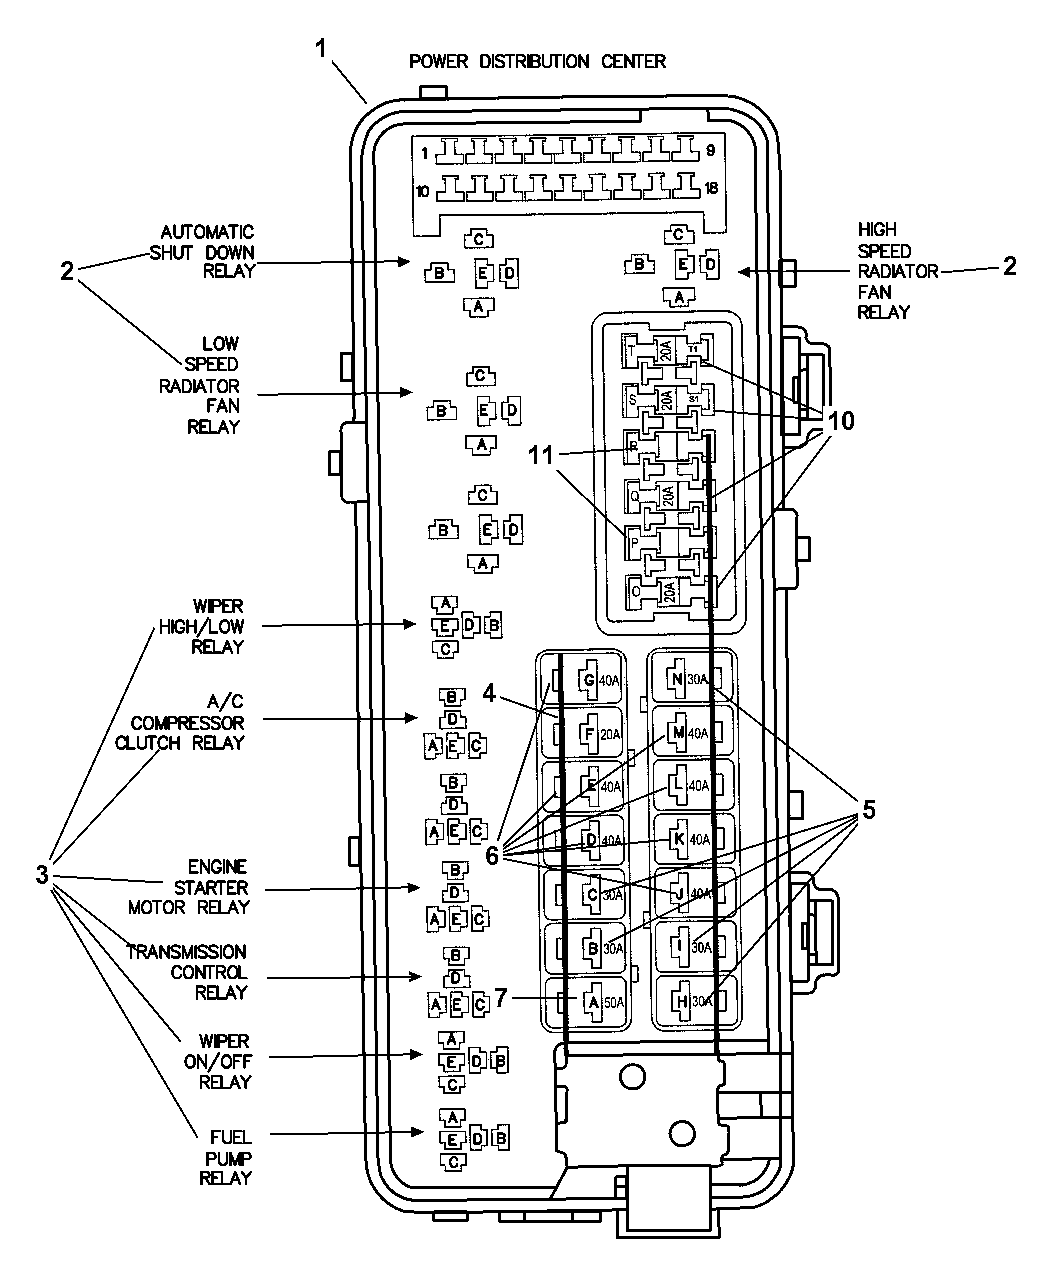 1999 dodge intrepid fuse box diagram 2004 dodge intrepid power distribution center - relays & fuses 2004 dodge intrepid fuse box diagram